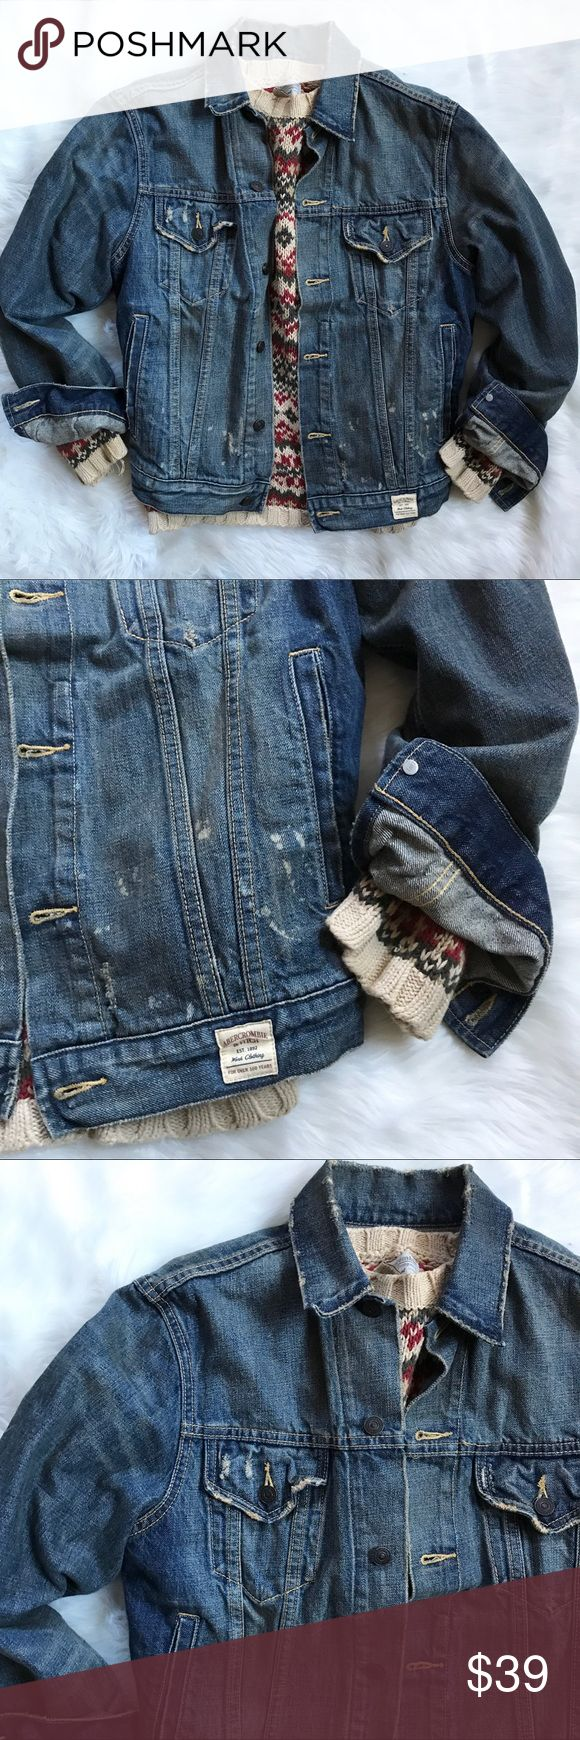 Mens Abercrombie Distressed Denim Jean Jacket Mens Abercrombie Distressed Denim Jean Jacket. Worn style. Splats are part of design. Good condition. Size small Abercrombie & Fitch Jackets & Coats